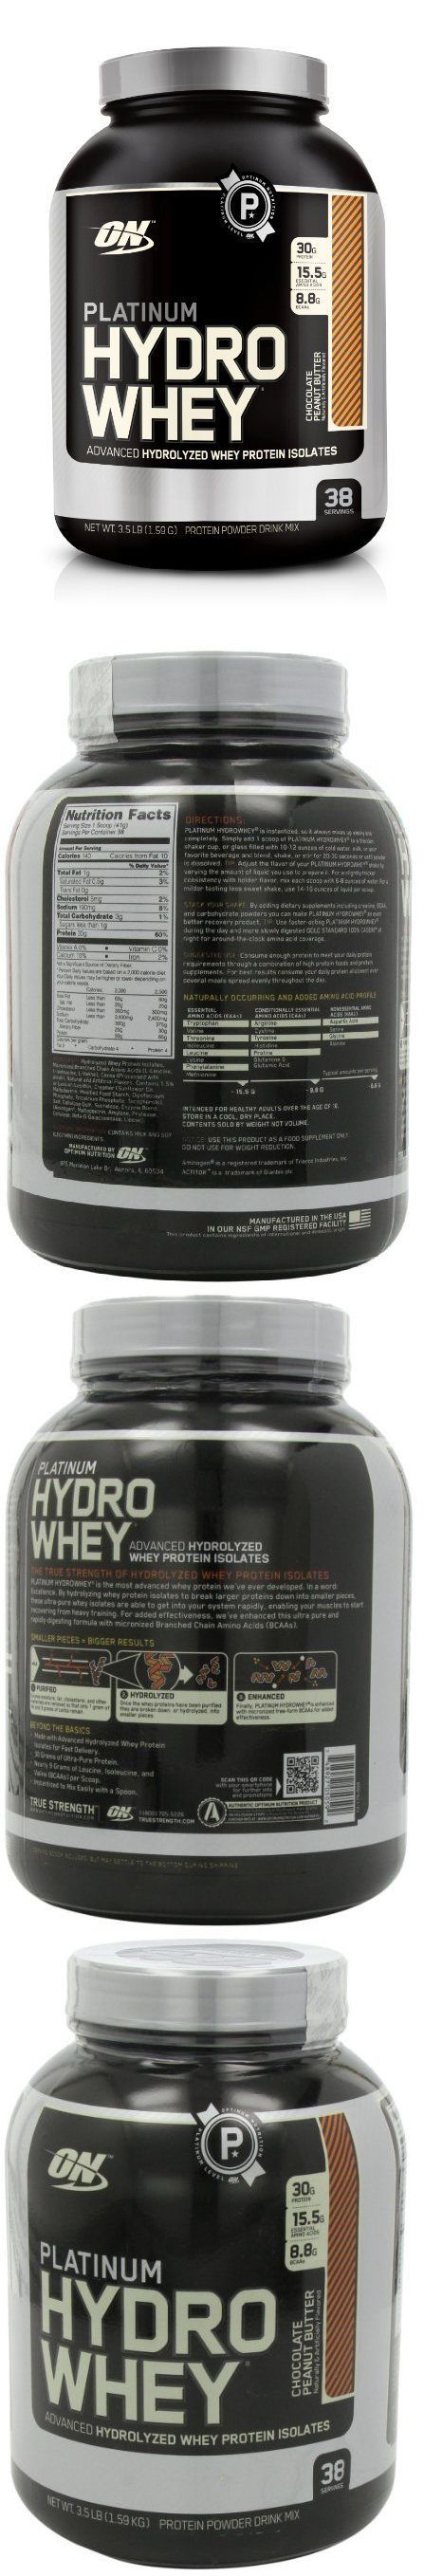 Protein Shakes and Bodybuilding: Optimum Nutrition Platinum Hydro Whey Protein Powder 3.5 Lb - Choose Your Flavor -> BUY IT NOW ONLY: $55.89 on eBay!